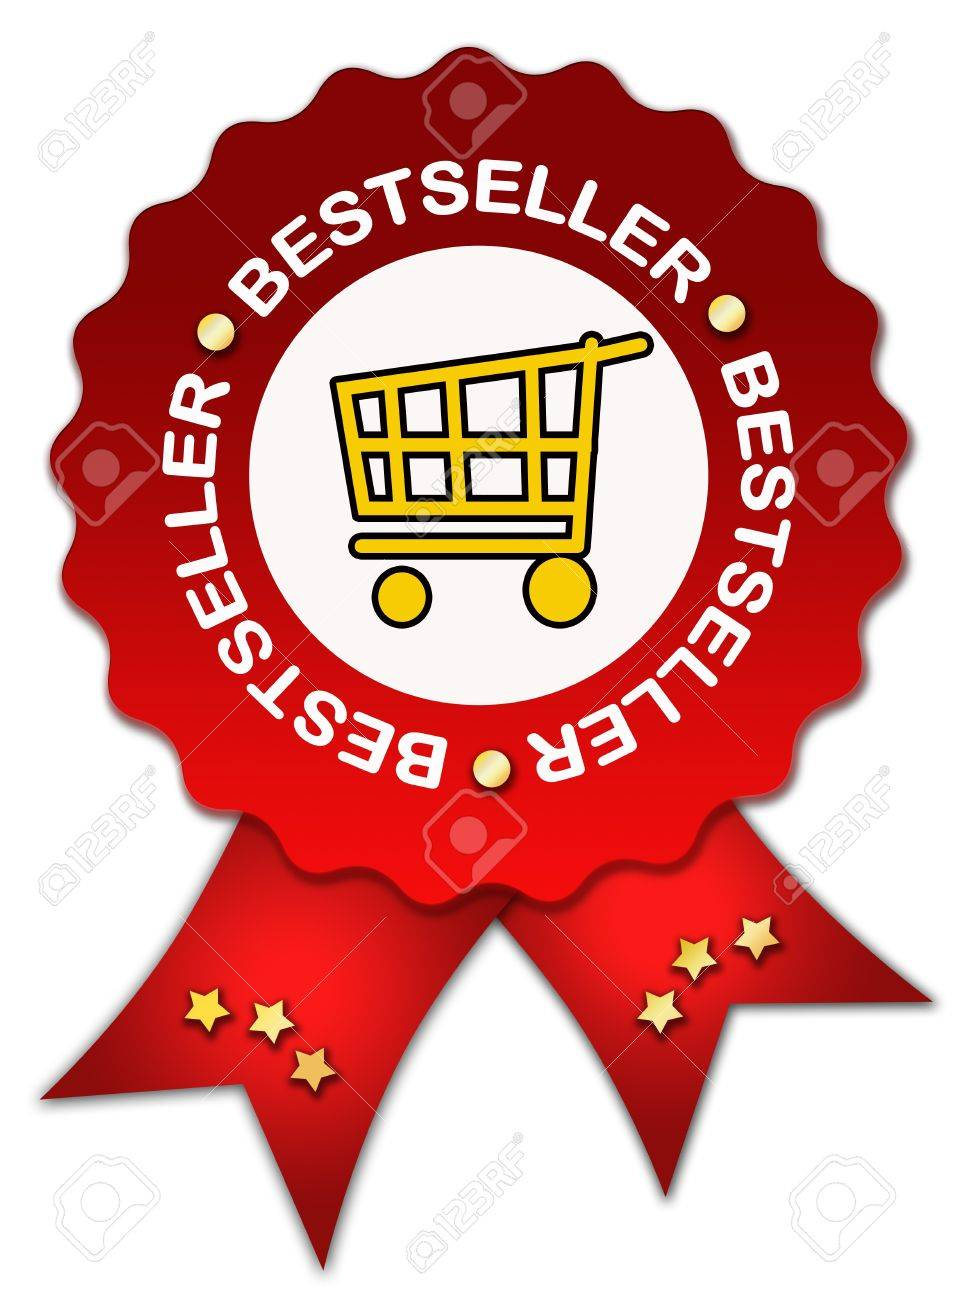 Bestseller icon with ribbon Stock Photo - 11698013